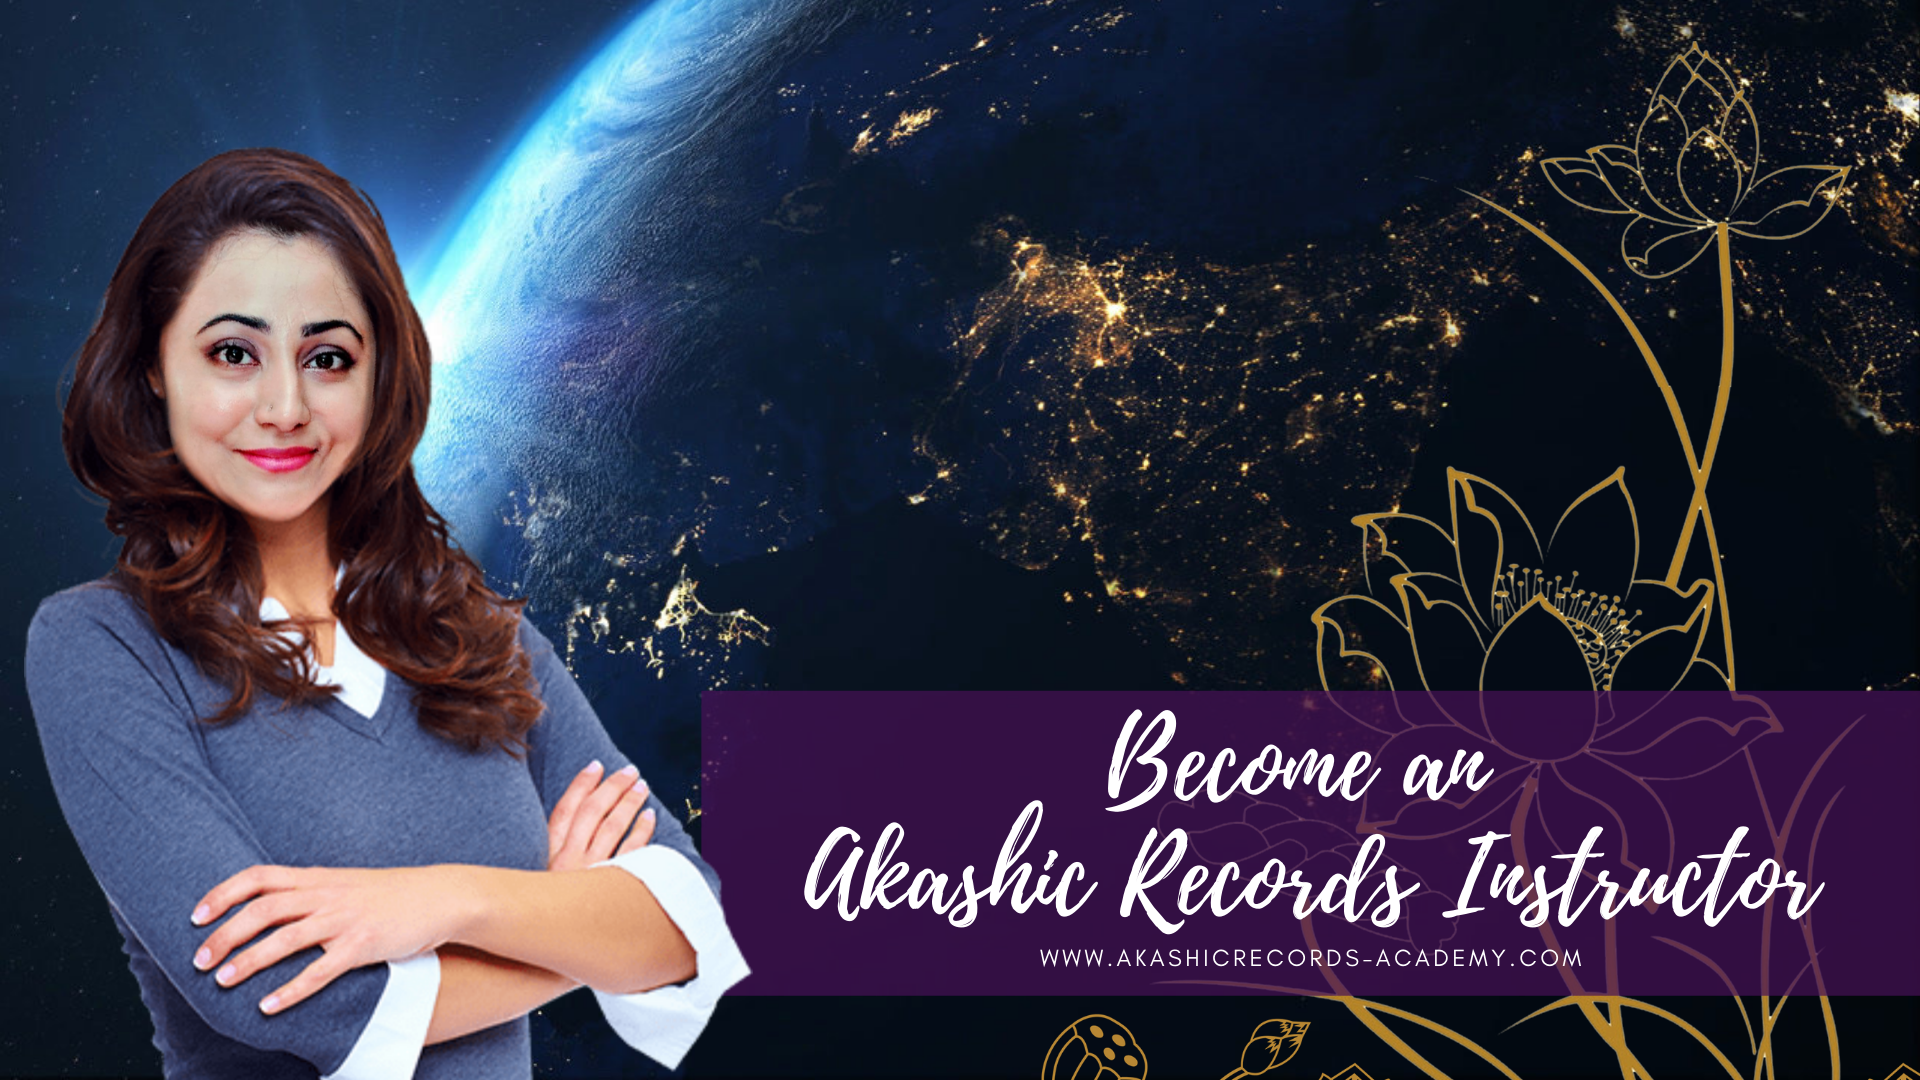 Become an Akashic Records Instructor